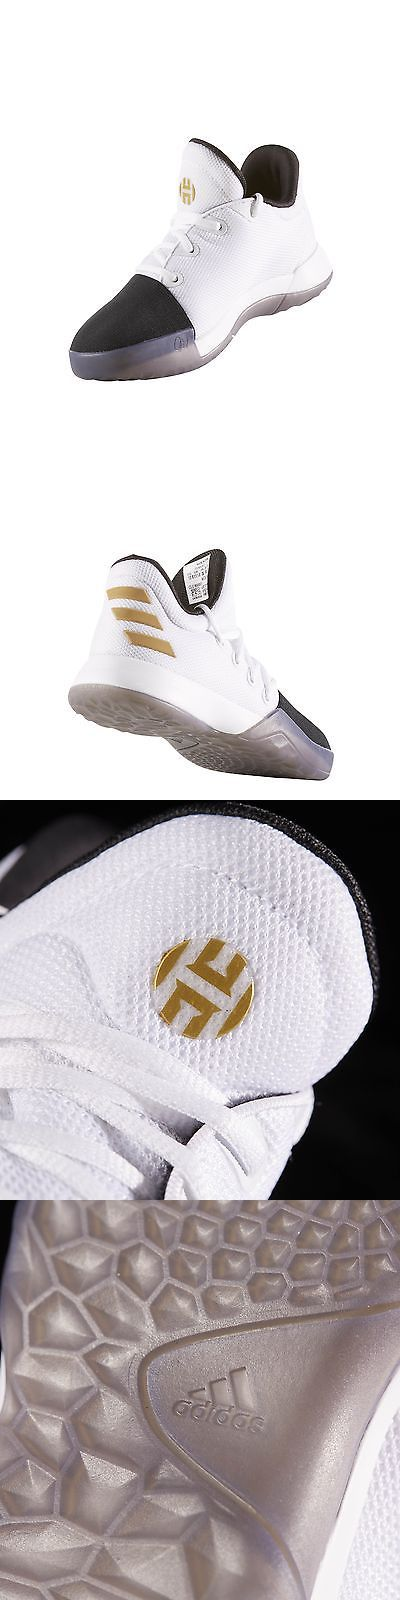 Basketball: Adidas Harden Vol 1 Ps White Black ( By3672 ) ($Itemsku) -> BUY IT NOW ONLY: $44.98 on eBay!